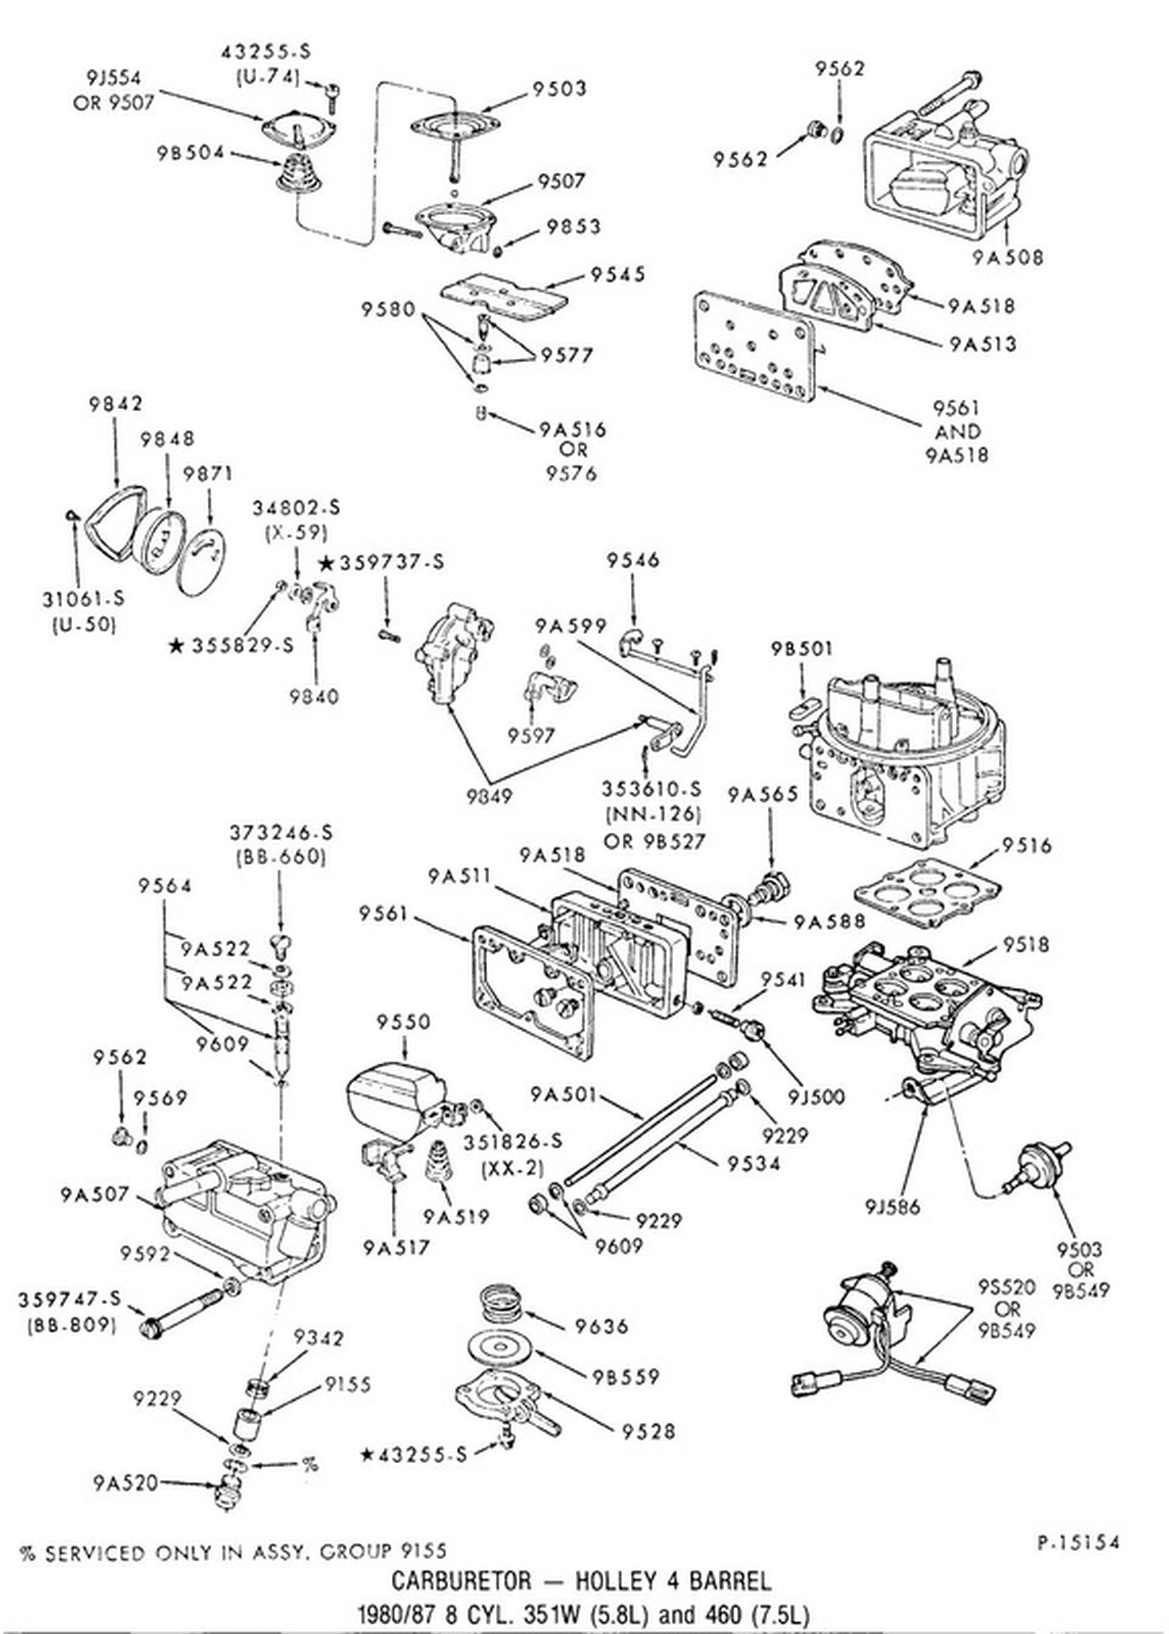 holley electric choke wiring diagram unlabelled of the cranium weber carb imageresizertool com